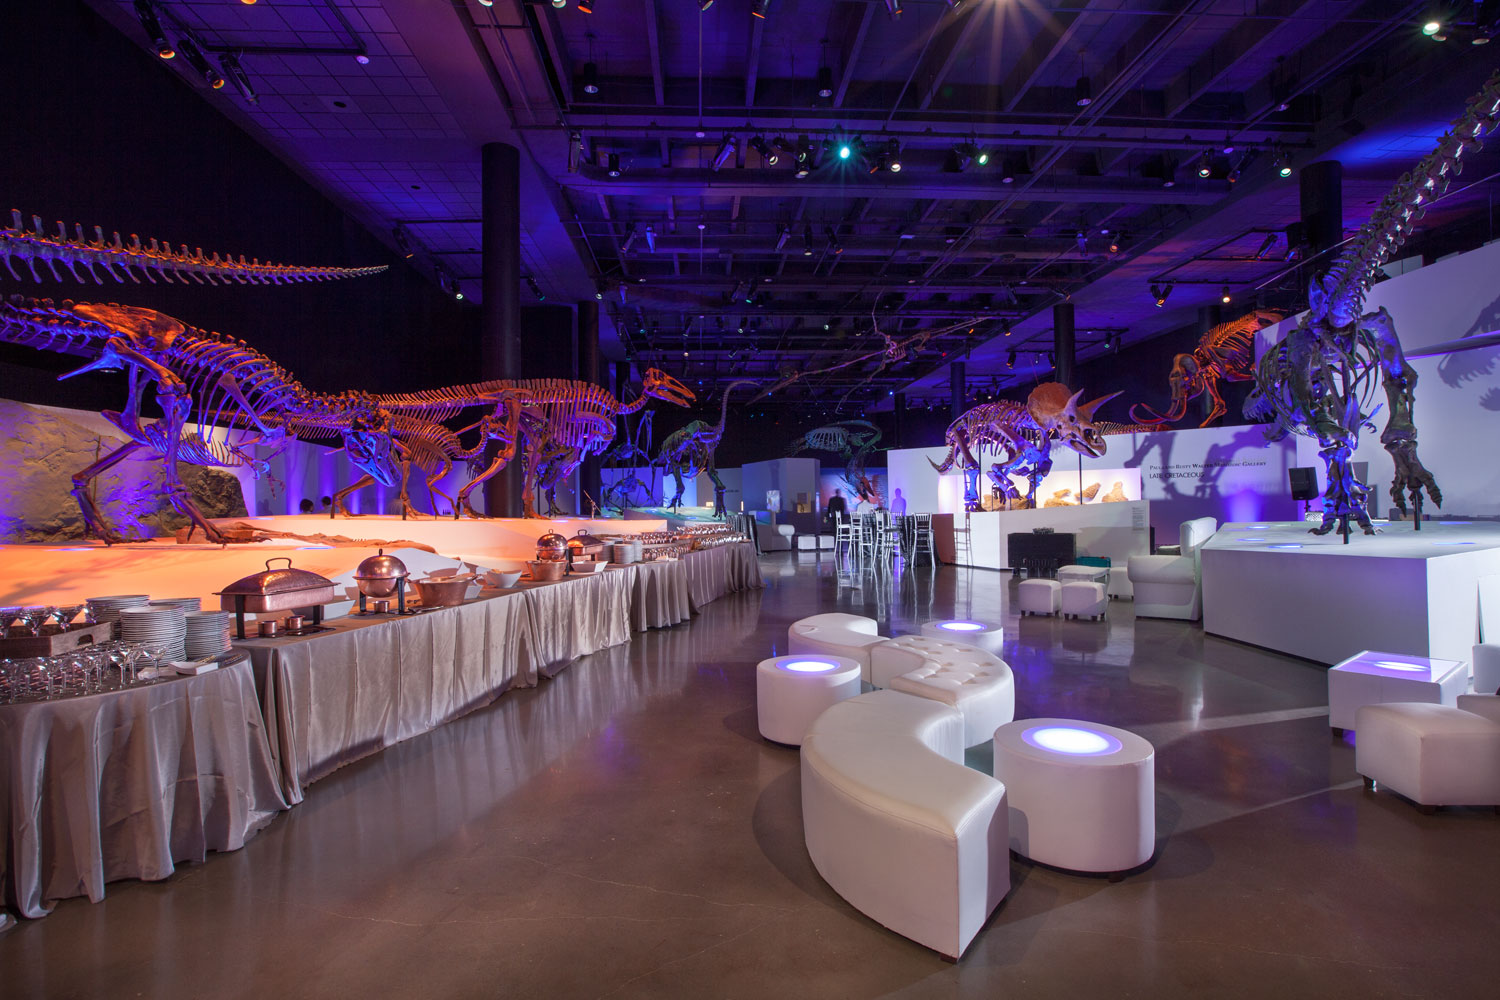 Houston Museum Of Natural Science Banquet Hall